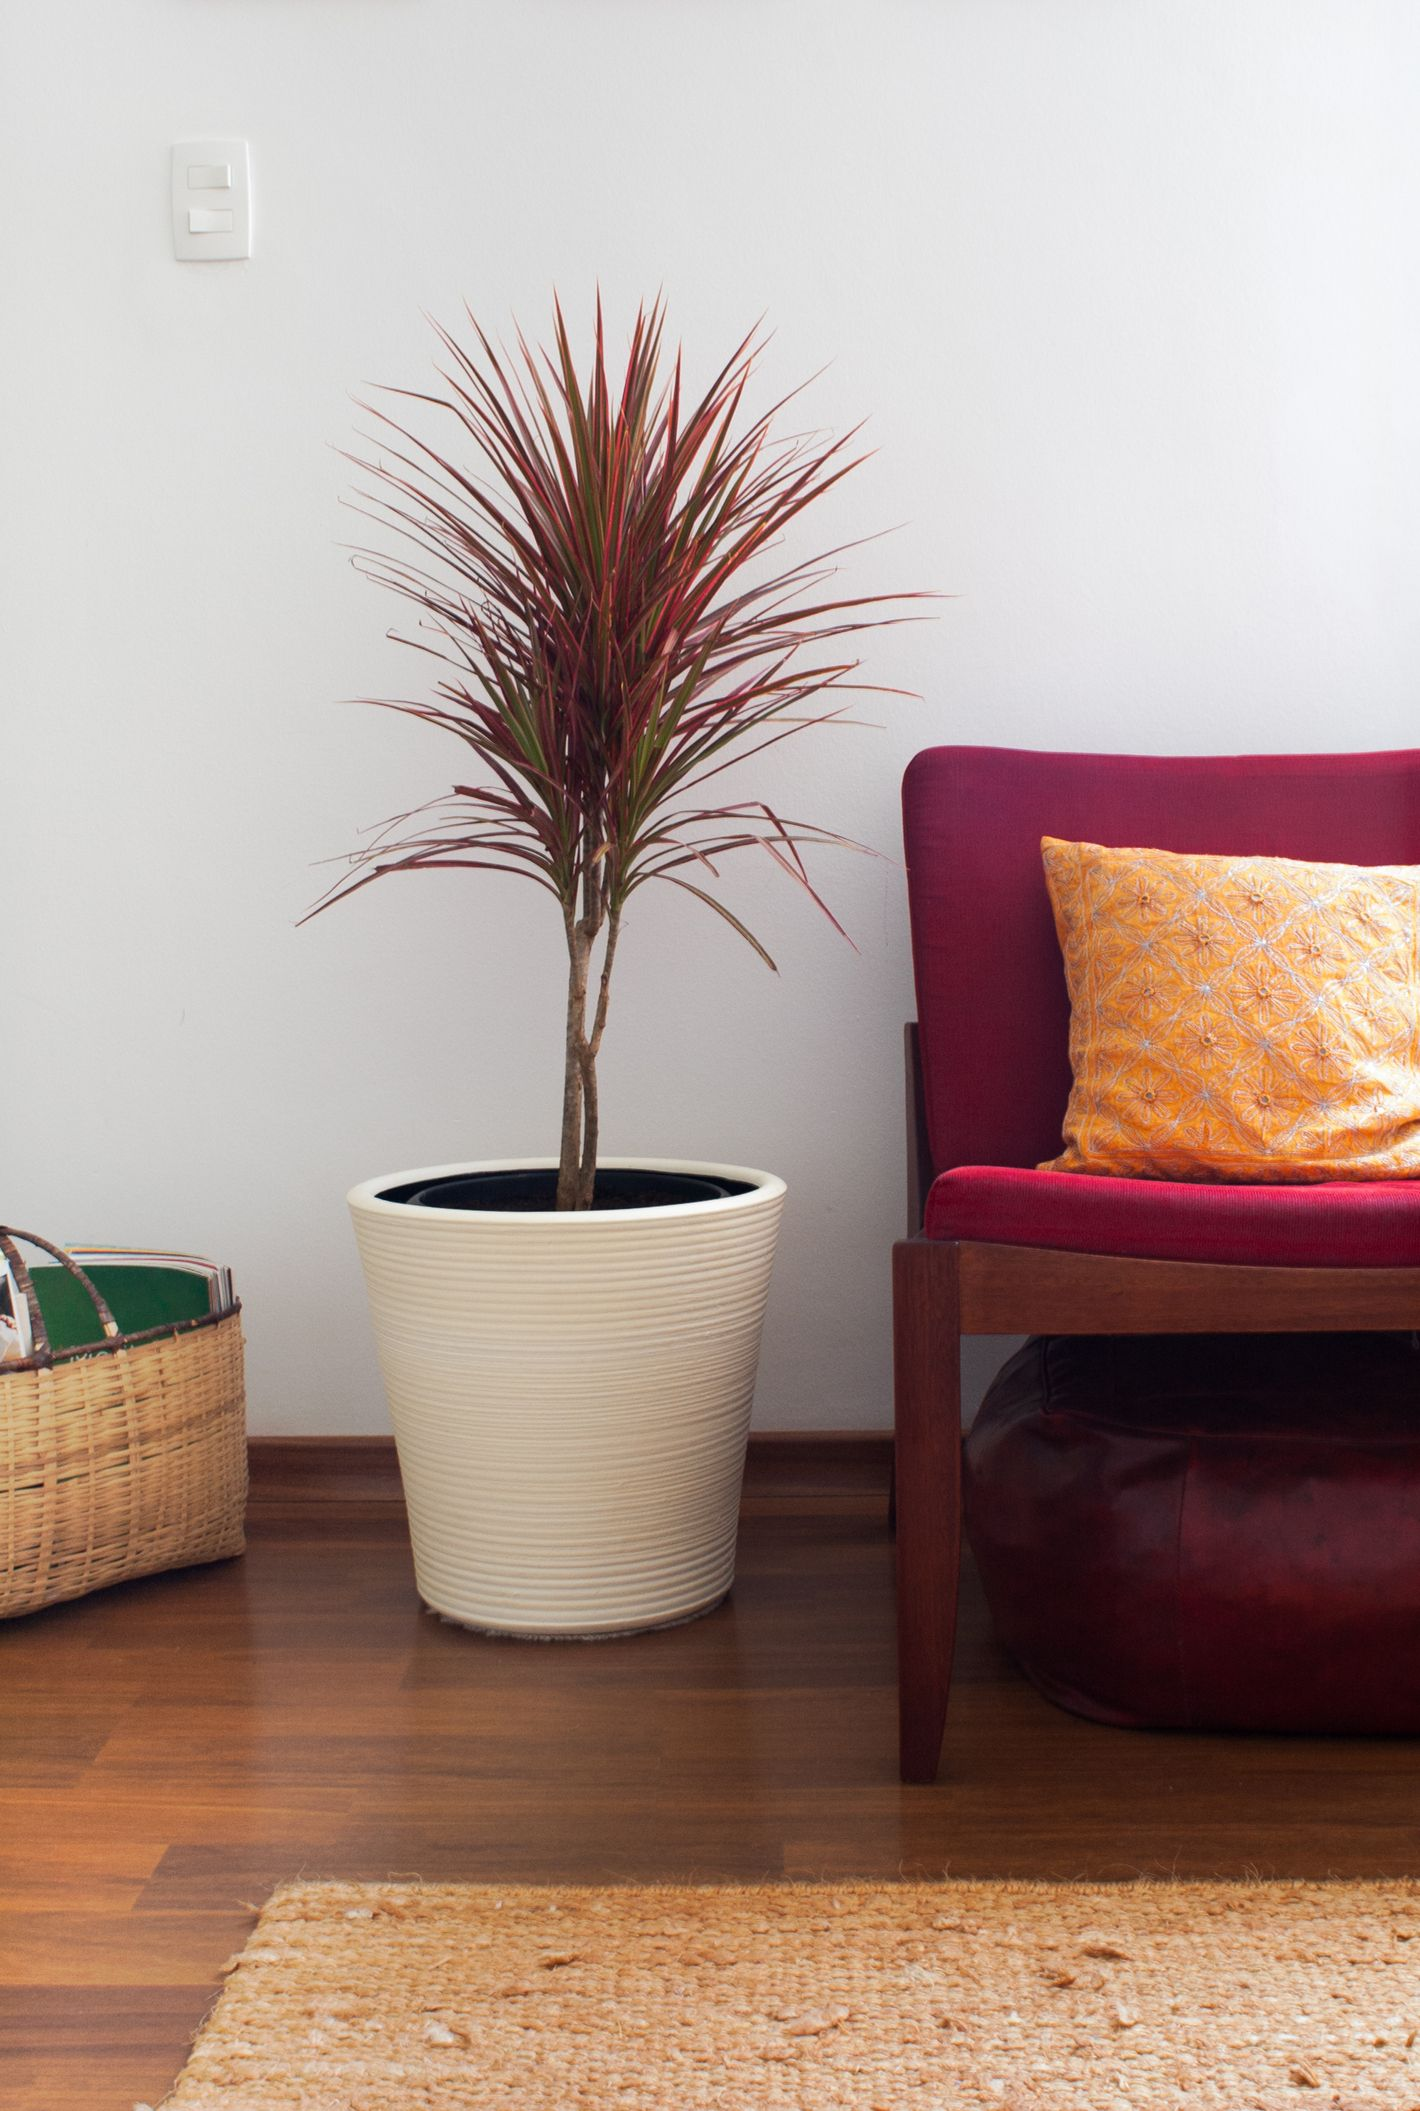 Dracaena Plants Are the New Fiddle Leaf Figs Trees, But They're so Much Easier to Keep Alive